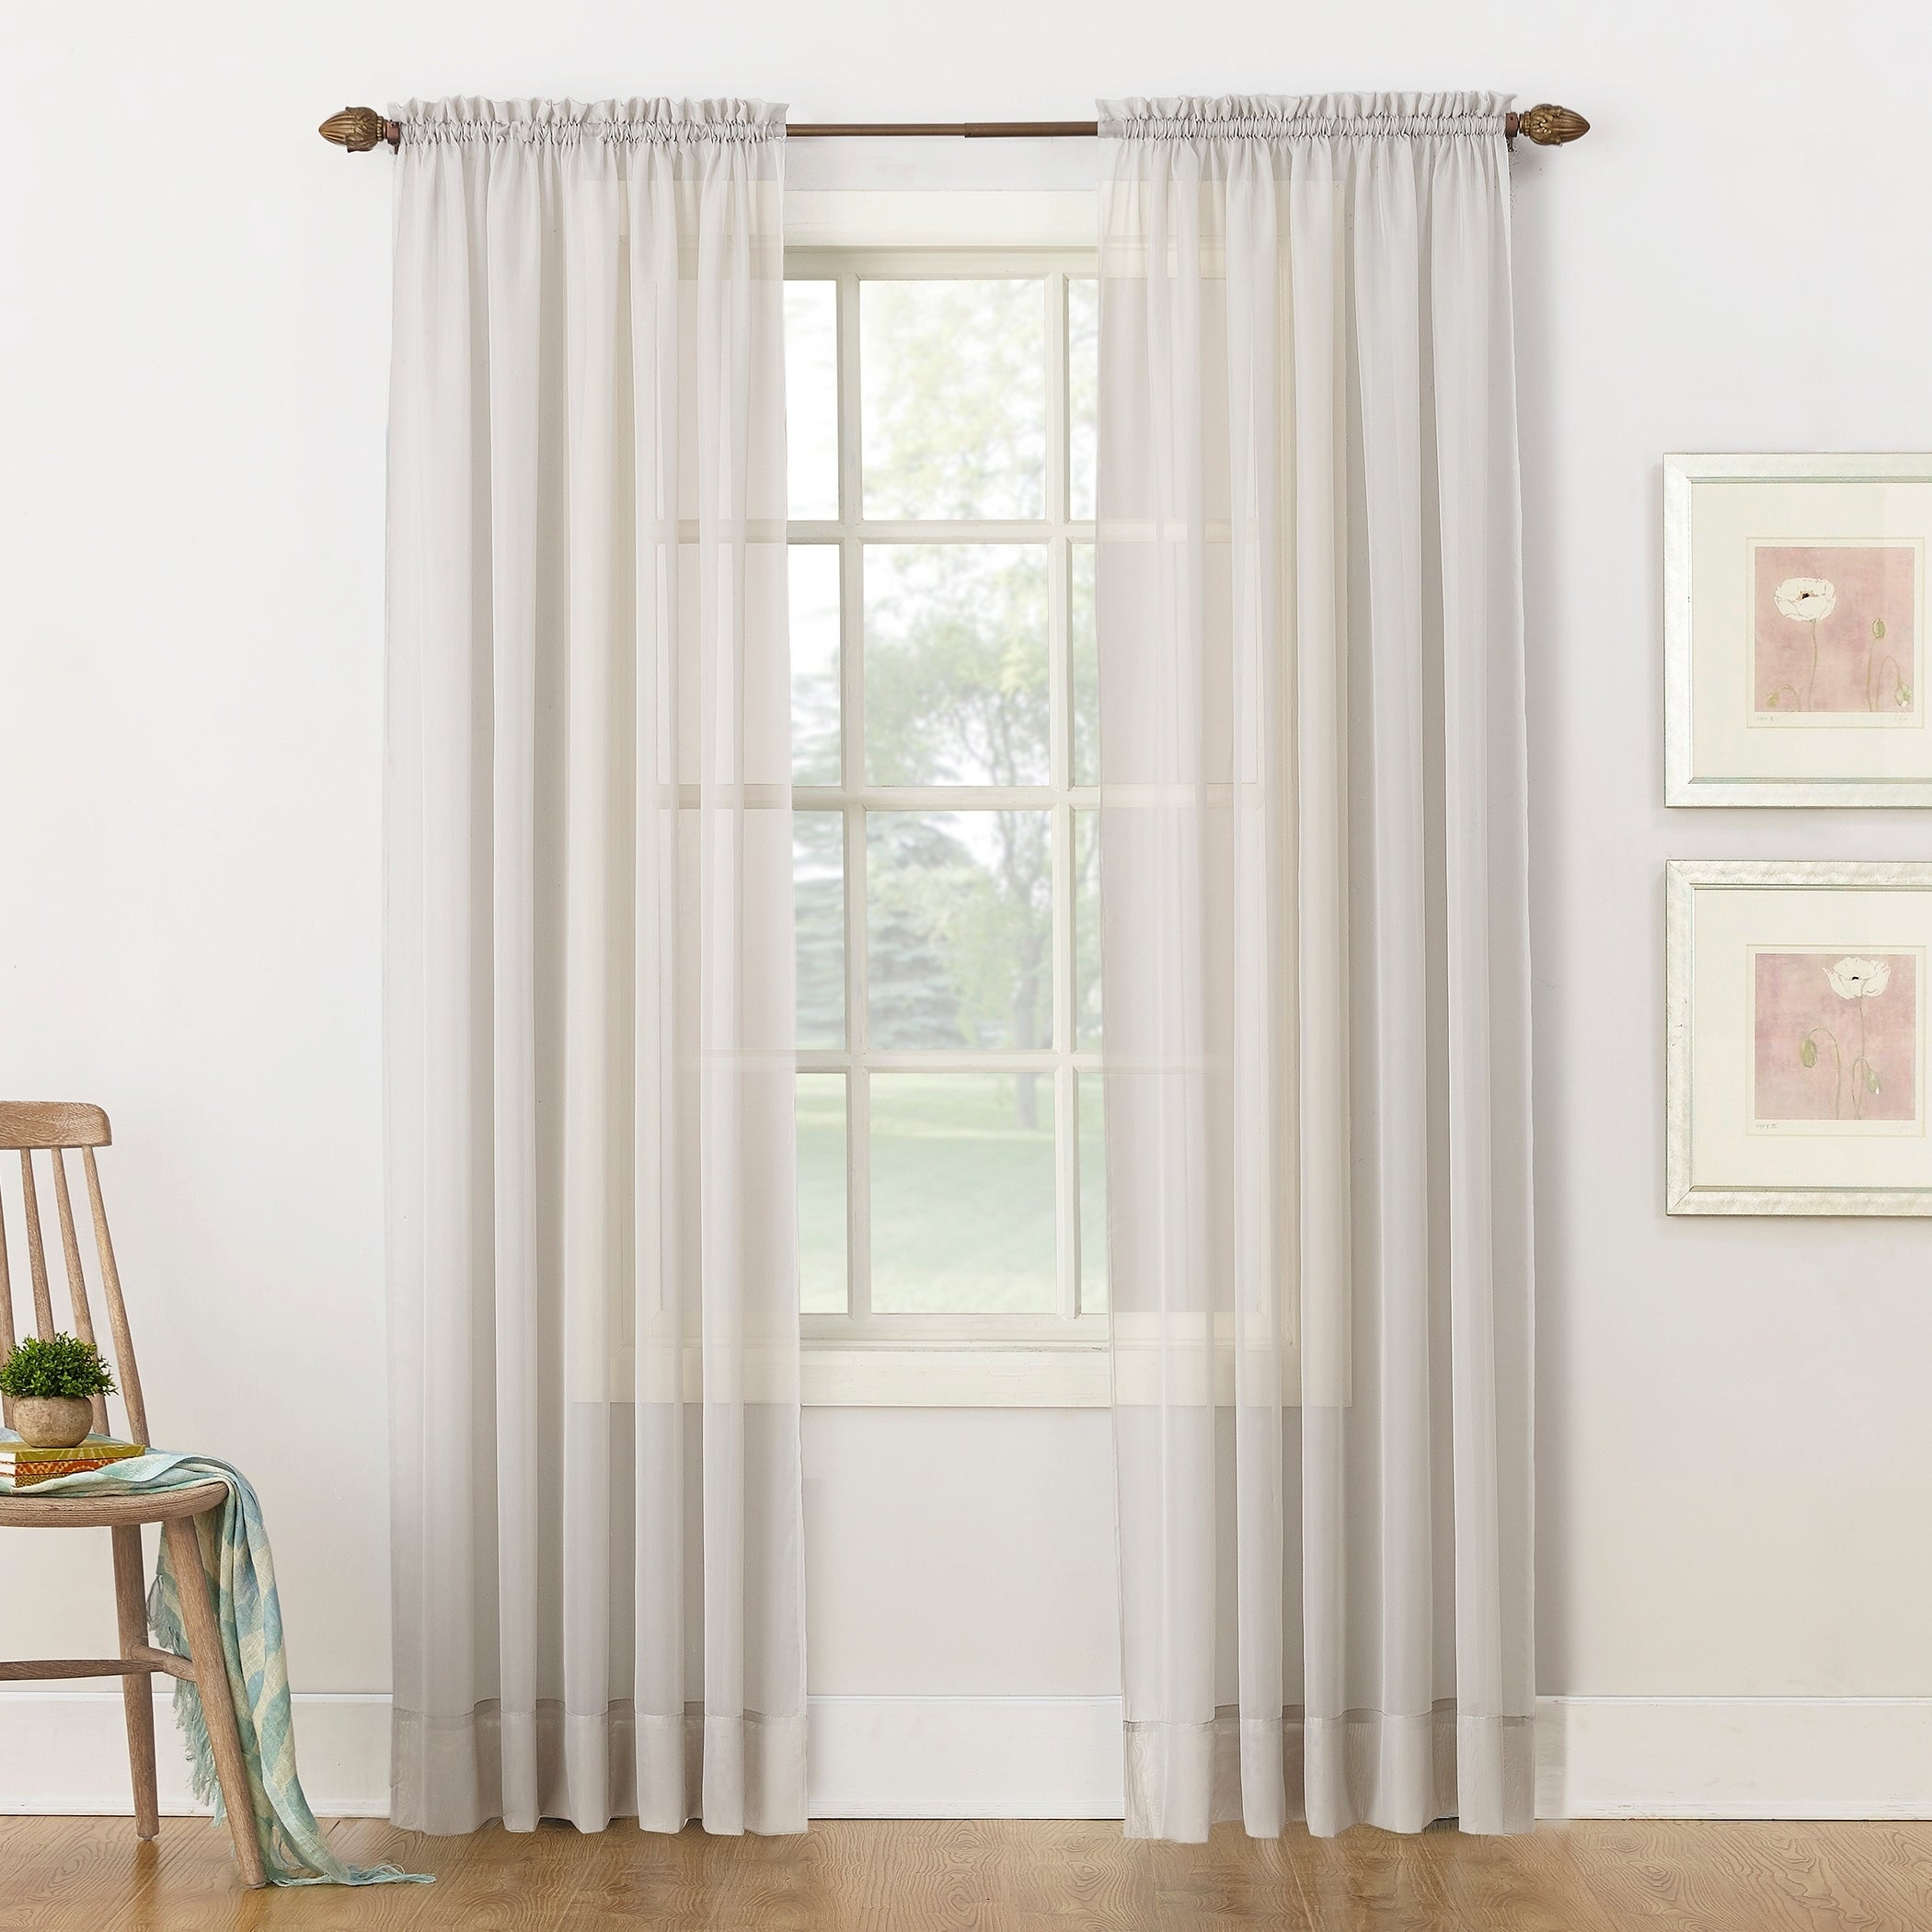 curtain sidelight shutters door sunburst window curtains and with full security size entry front